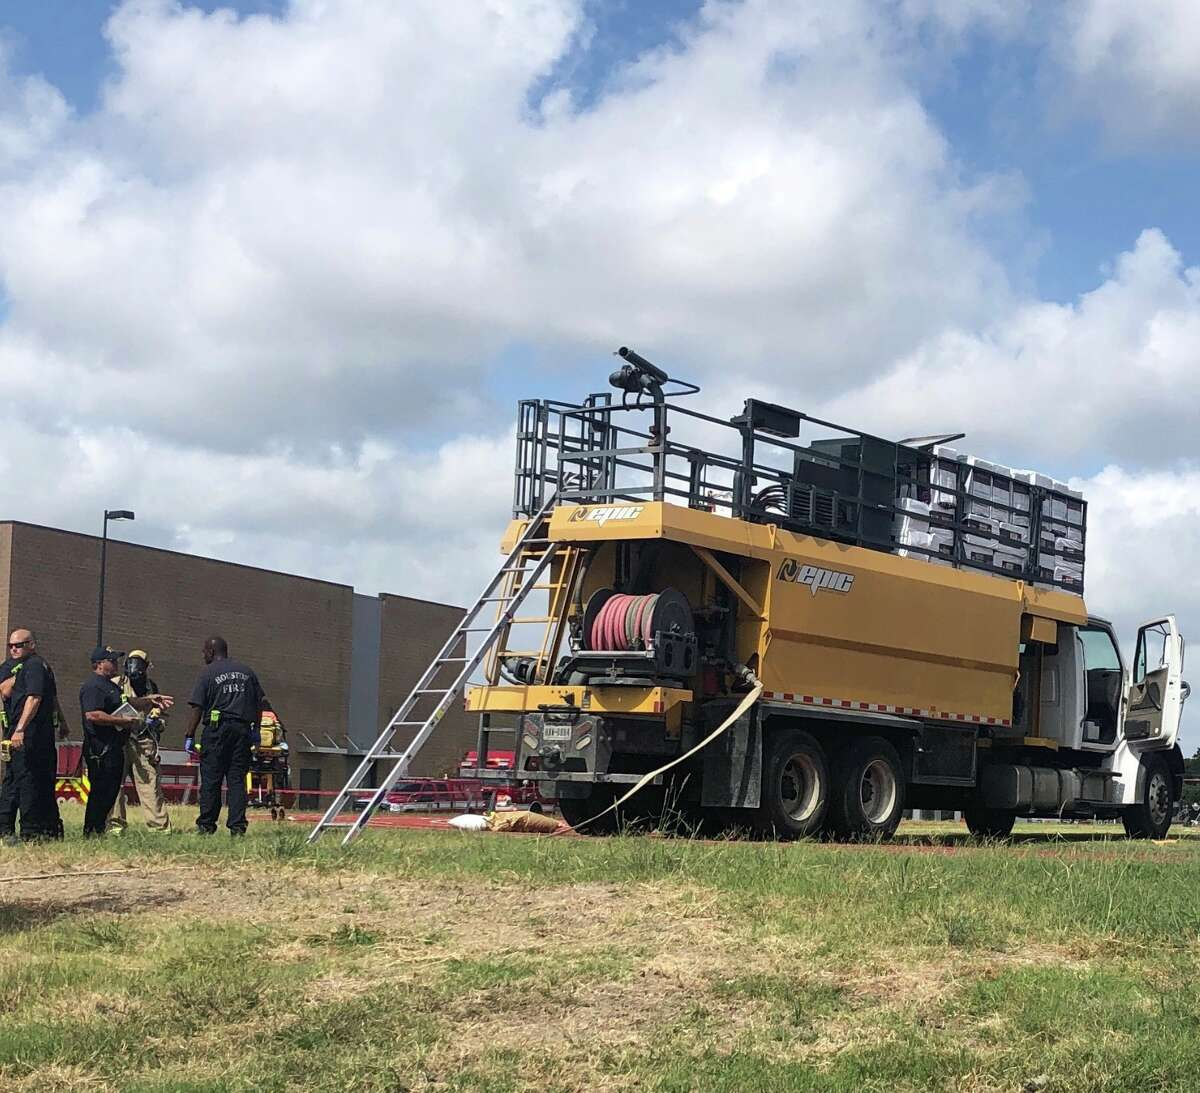 Houston firefighters are on scene after two men died after falling into a truck tank Monday, July 29, 2019.